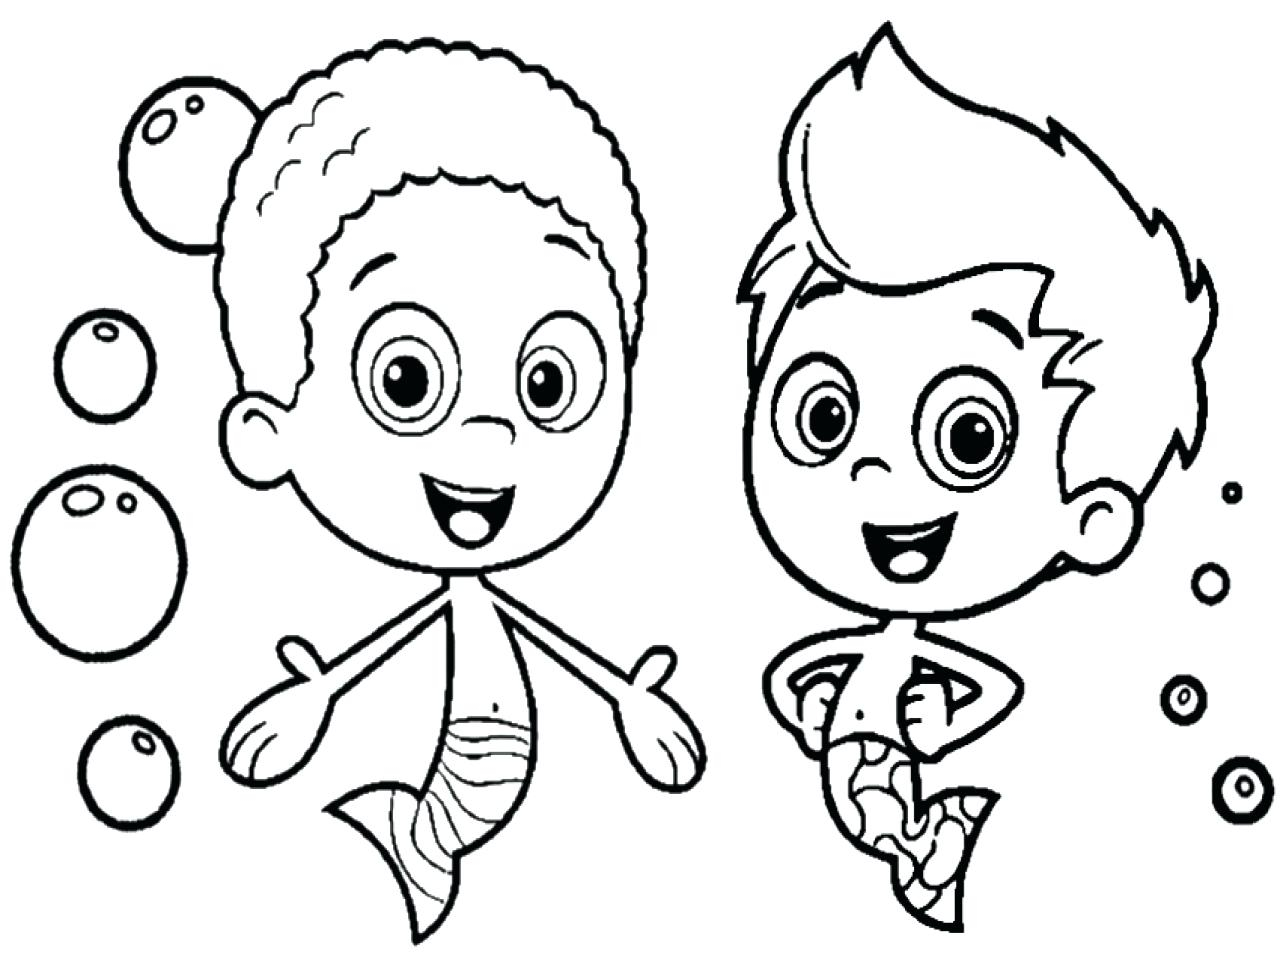 coloring pages nick jr coloring pages size for colouring line printable of nick jr coloring pages